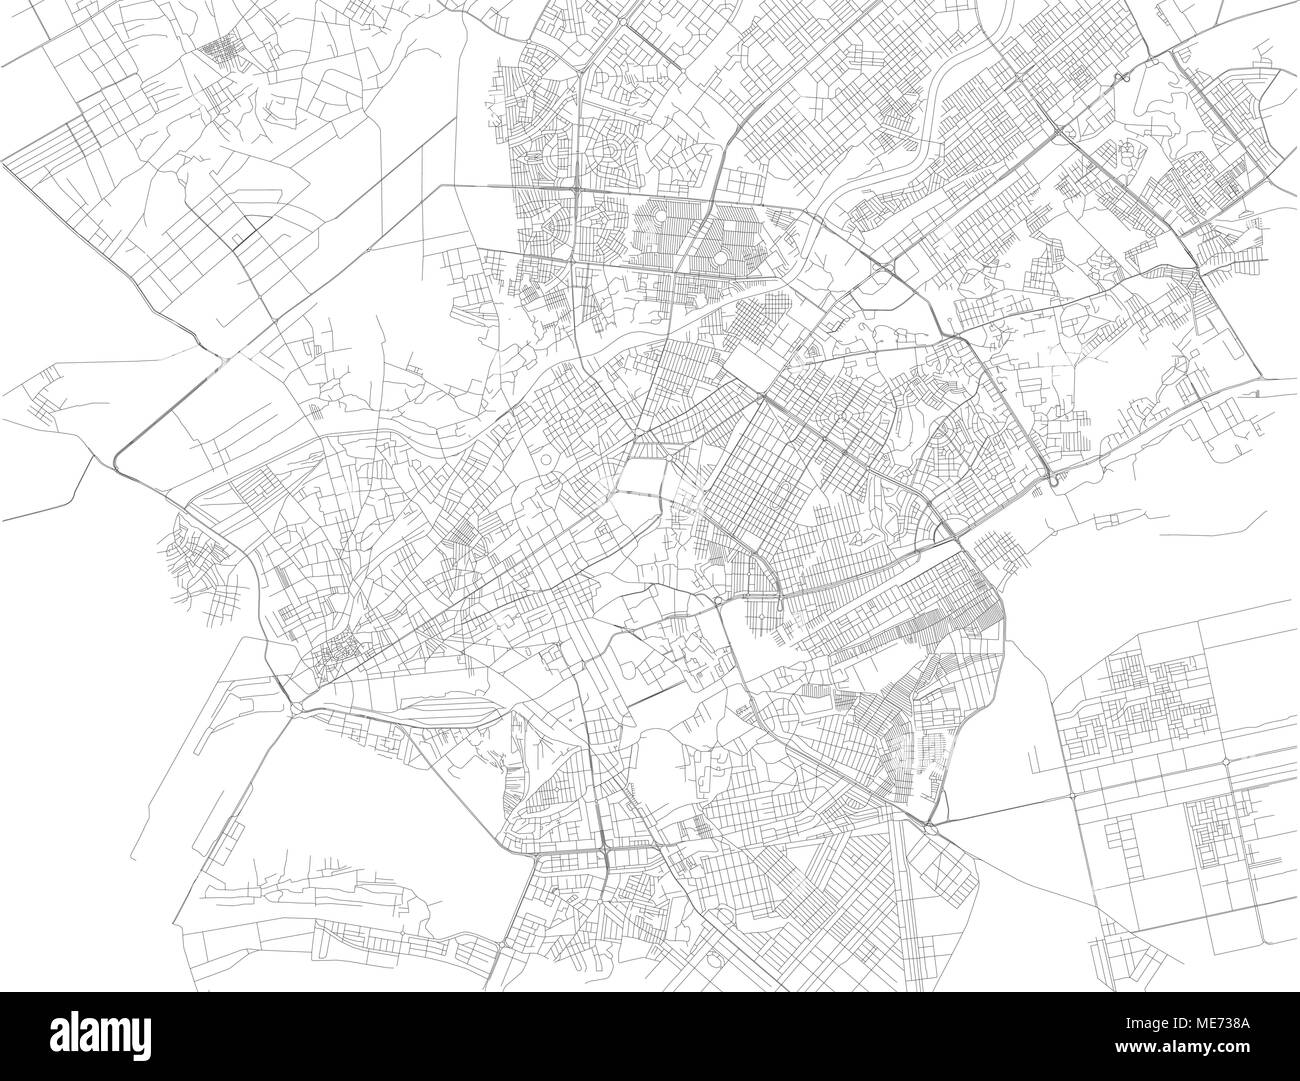 Map Of Asia Karachi.Map Of Karachi The Capital Of The Pakistani Province Of Sindh